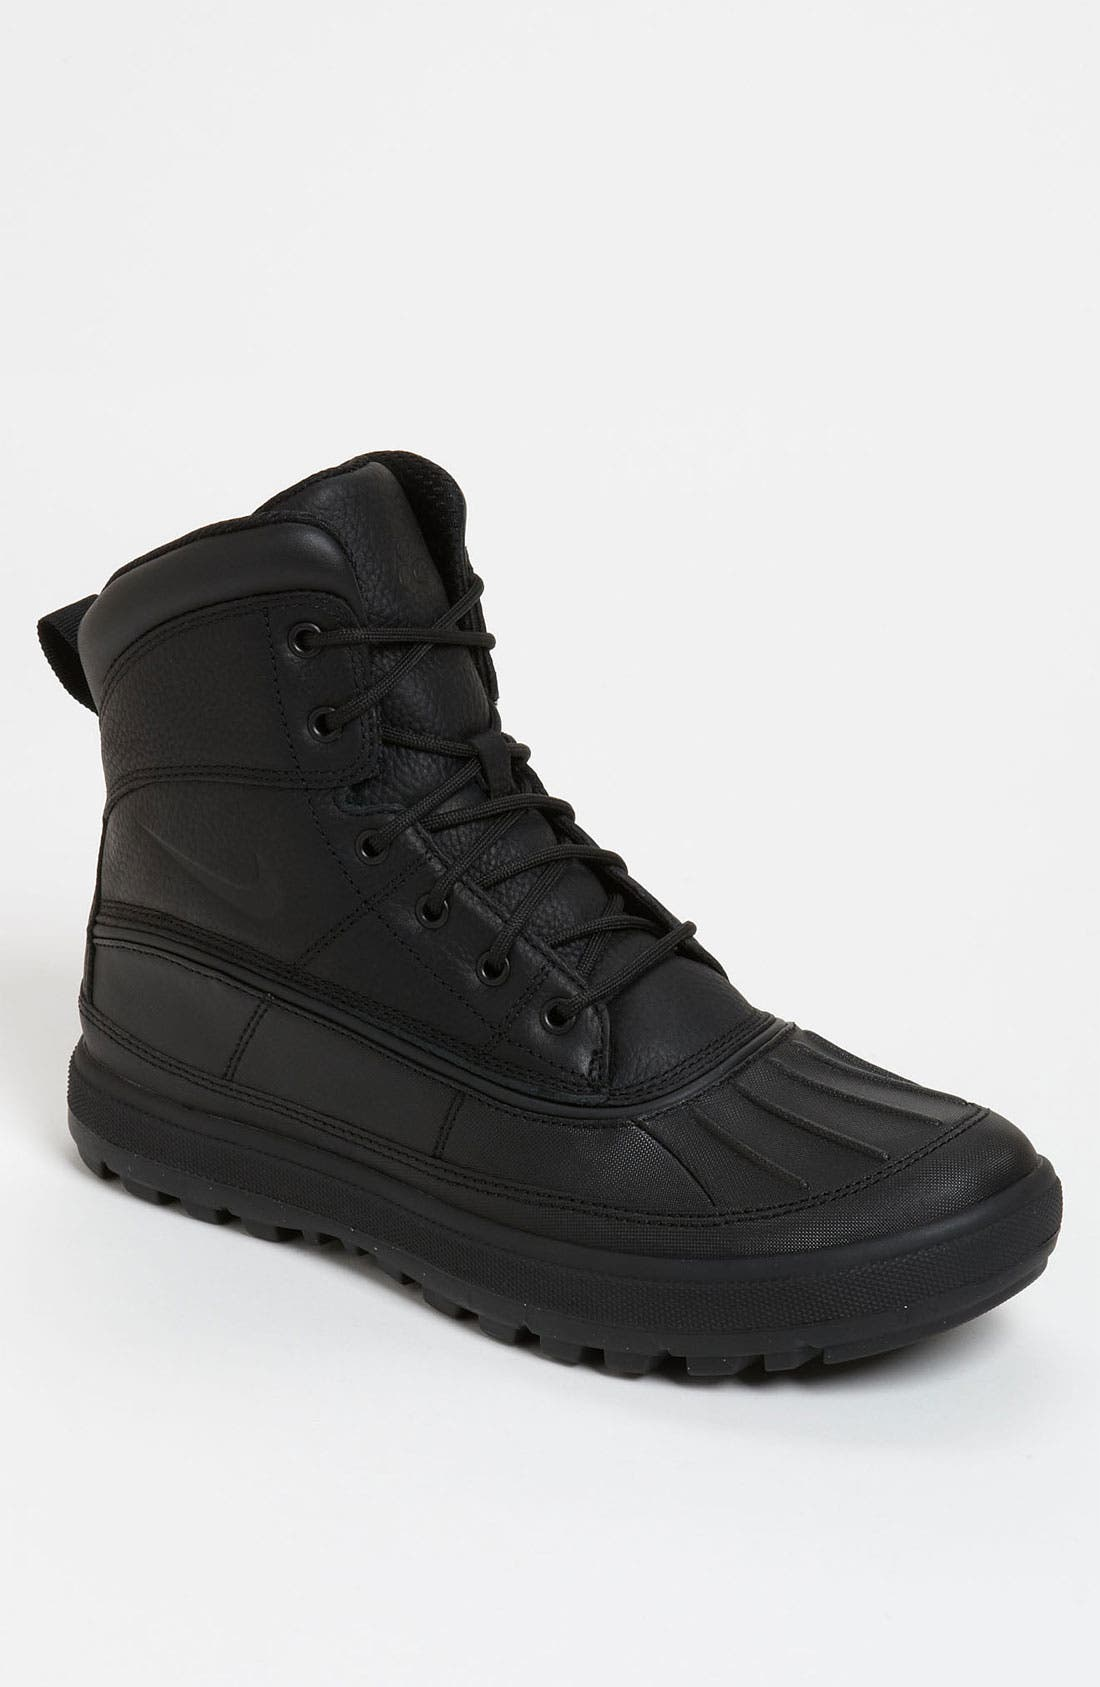 Alternate Image 1 Selected - Nike 'Woodside II' Snow Boot